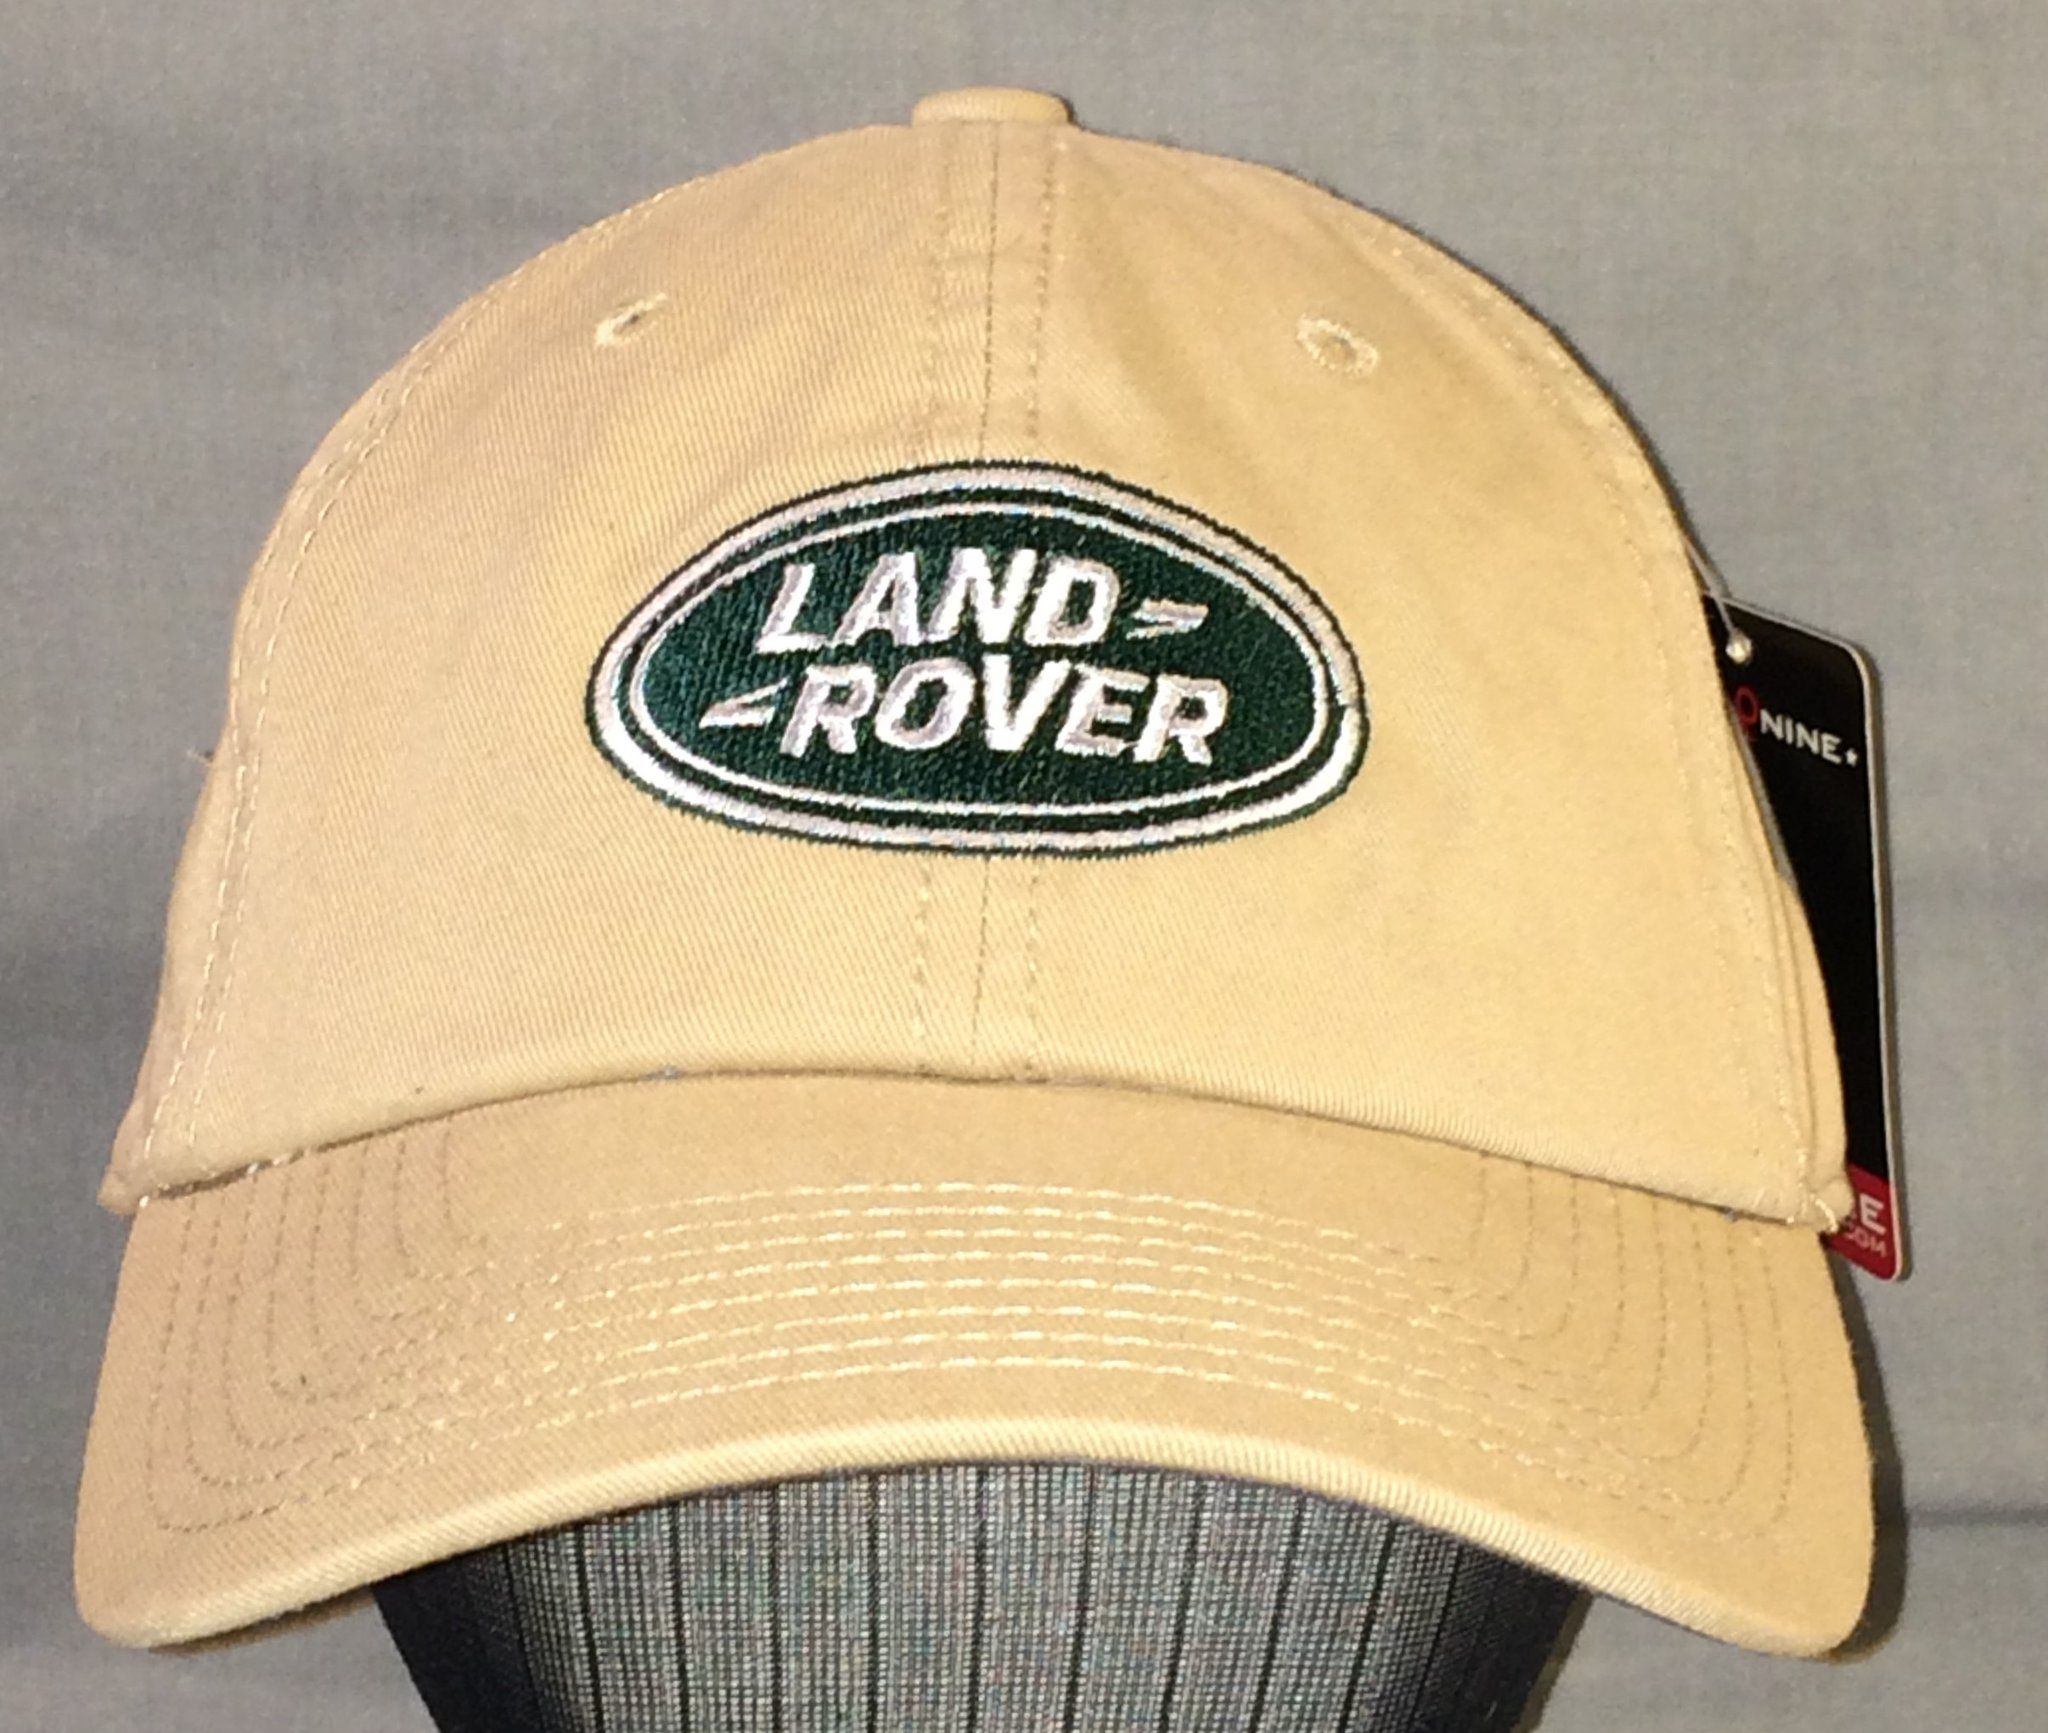 Land Rover Hat Four Wheel Drive Vehicle Hats Truck Hats Trucker Hats Baseball Caps Baseball Hats Ball Caps Dad Hat Dad Hats Strapback Hats Baseball Hats